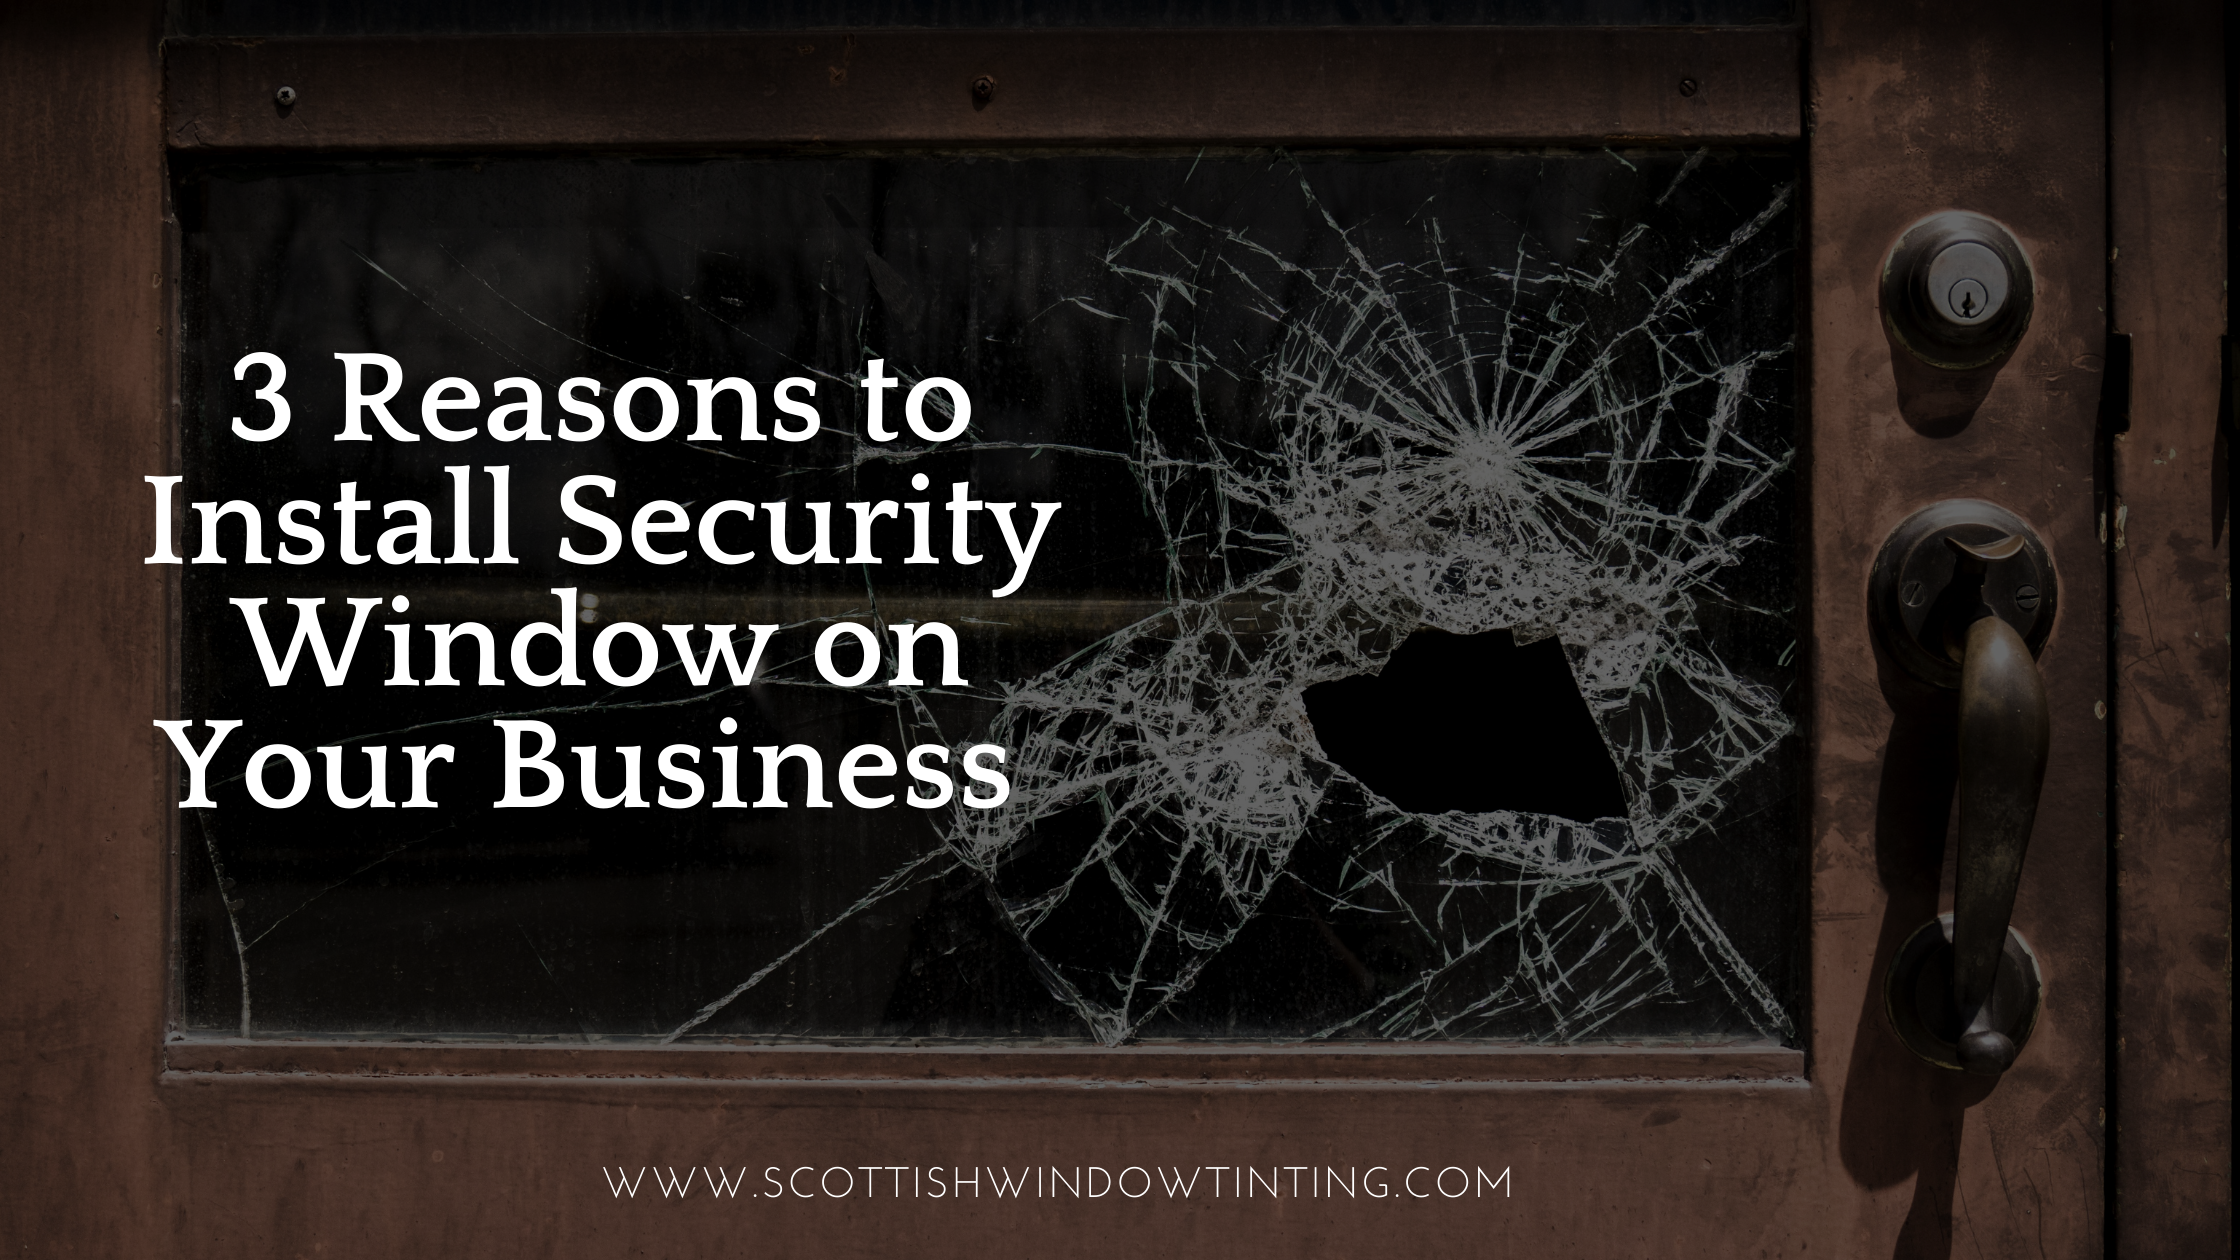 3 Reasons to Install Security Window Film In Denver Businesses